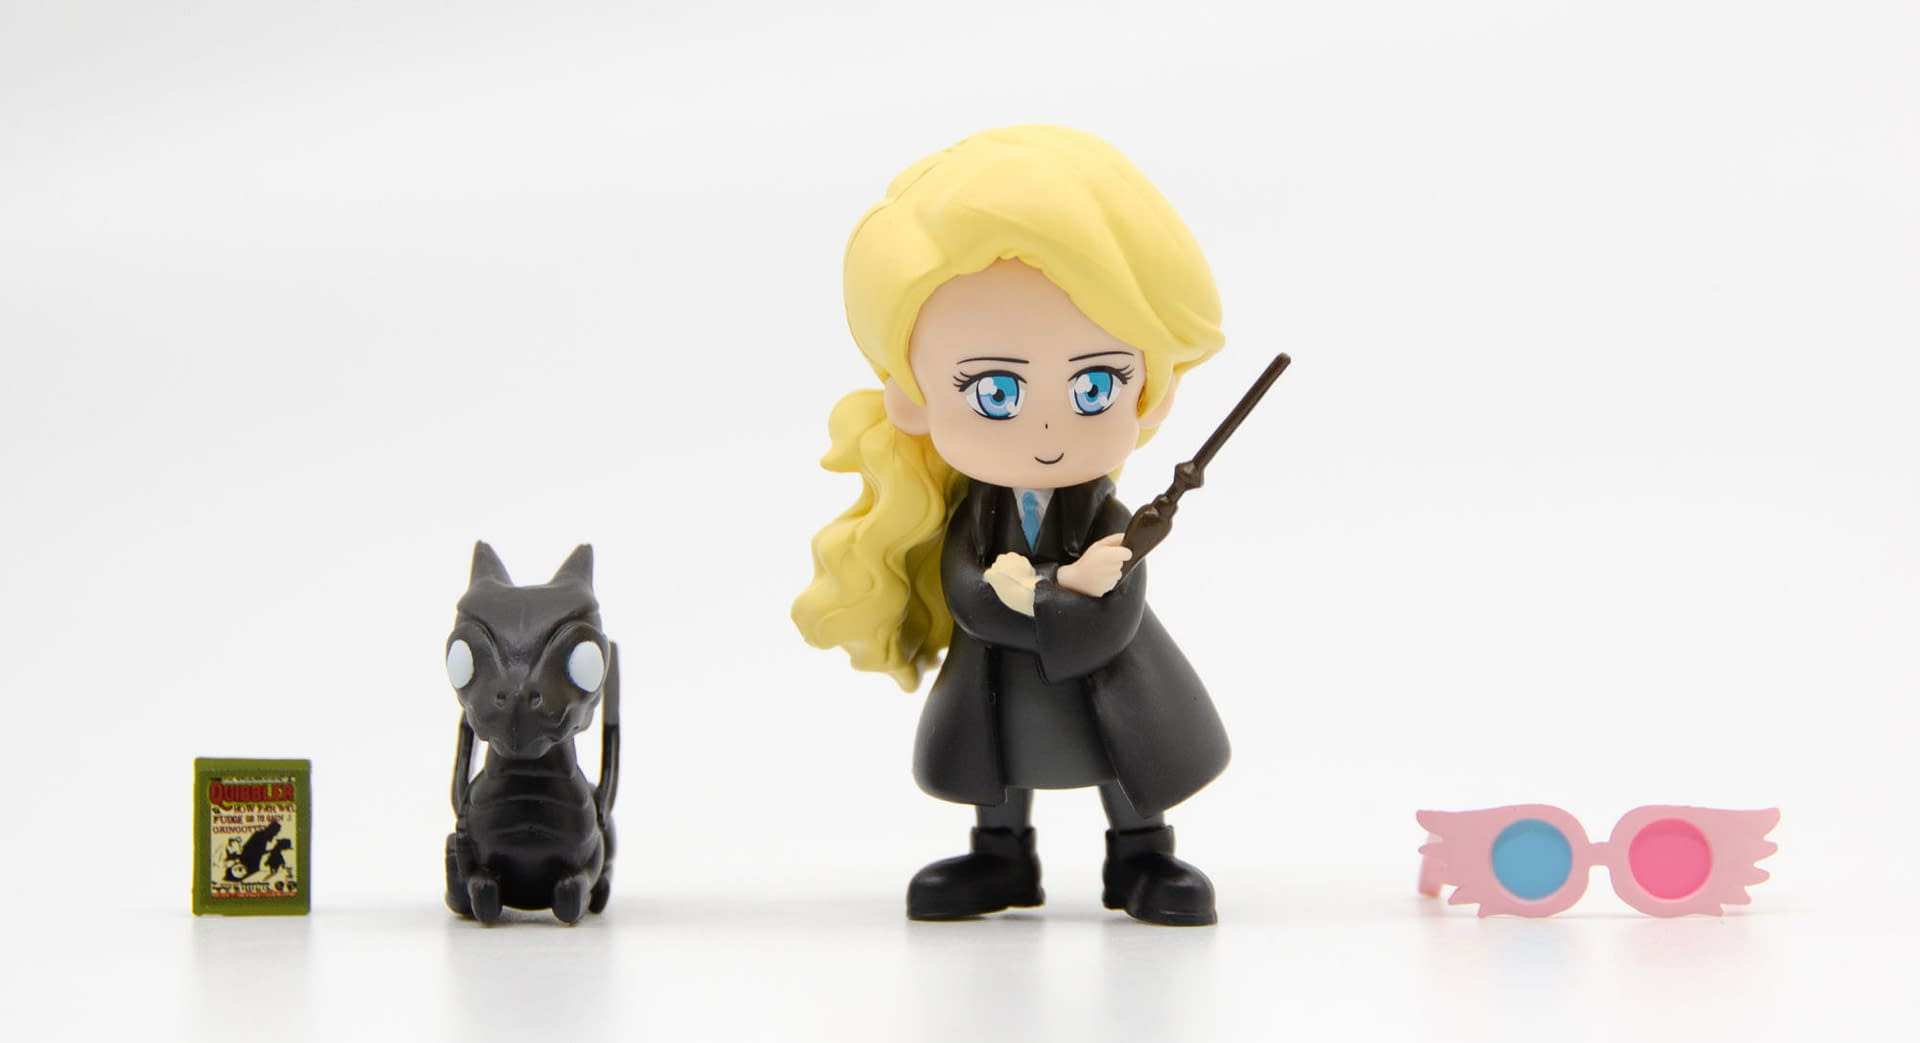 YuMe Harry Potter Capsule Toys Hit Walmart On July 17th